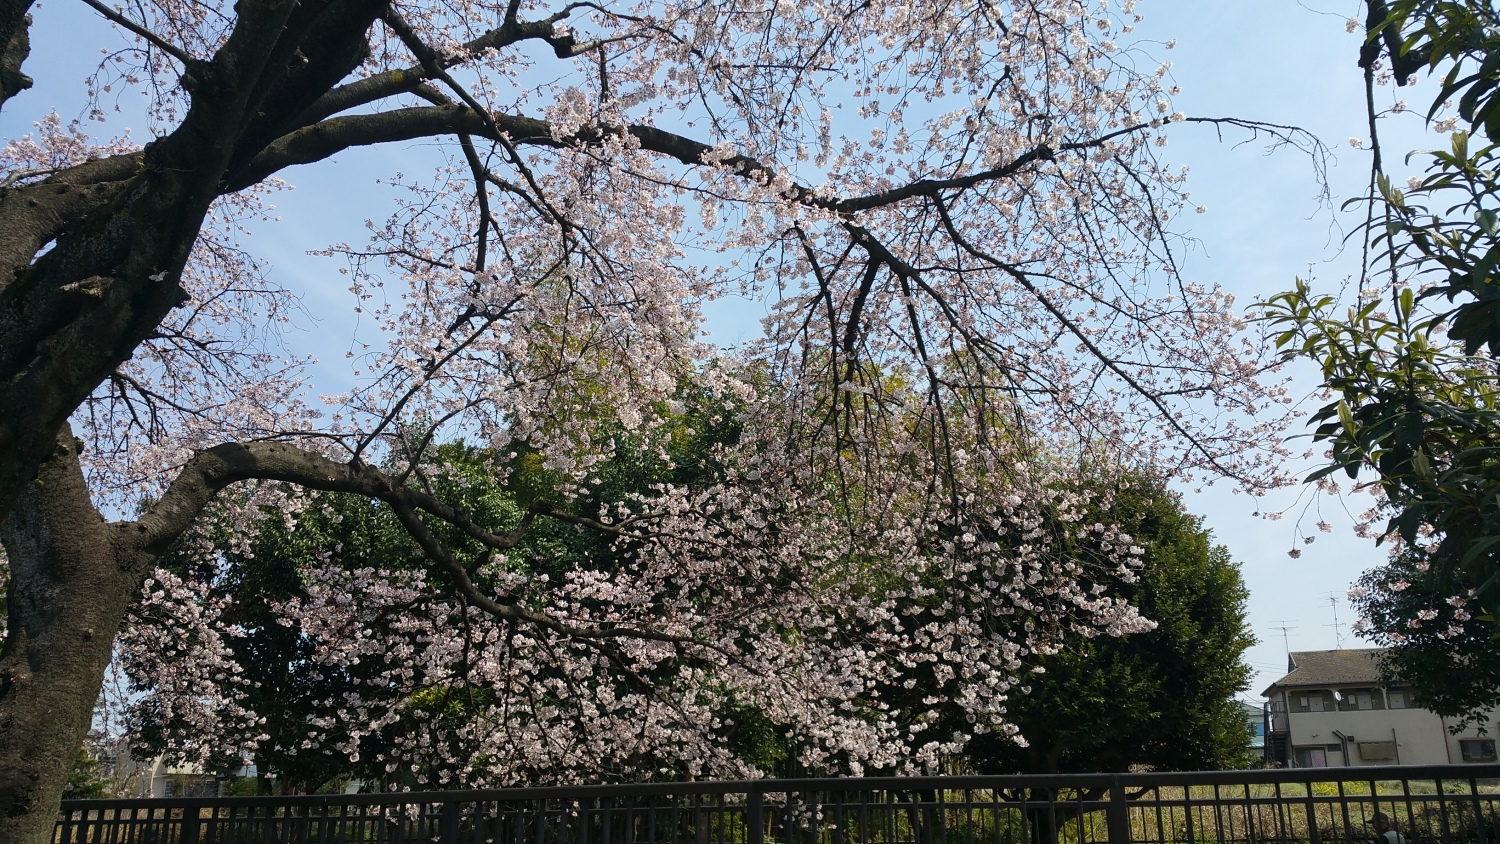 Images as for the cherry blossoms in full blossom